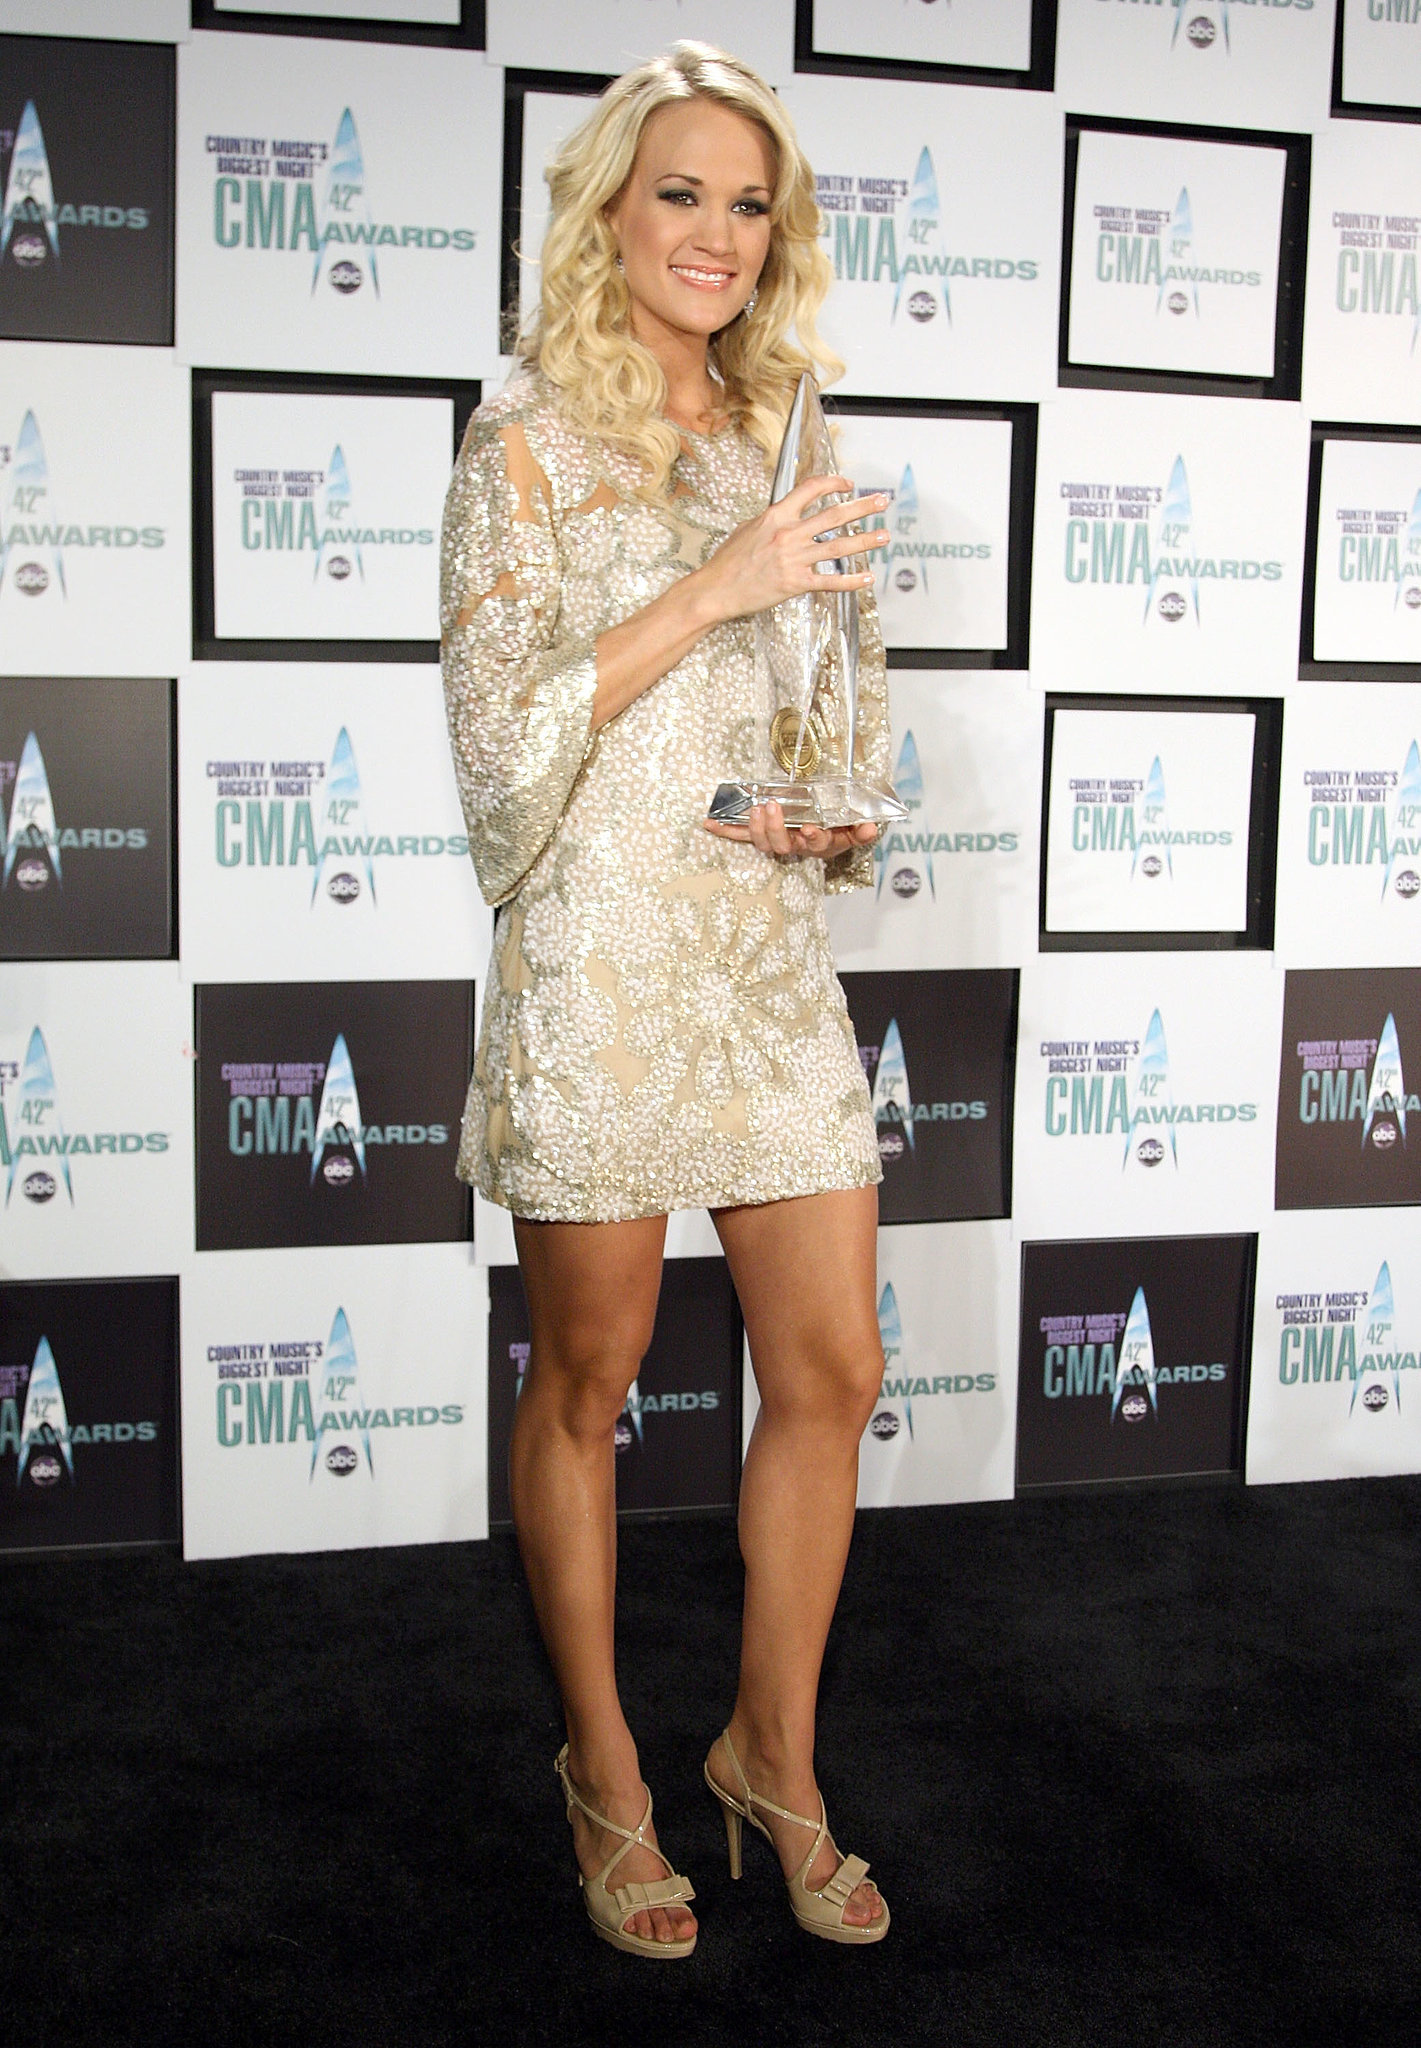 The performer was all smiles while holding her award for female vocalist of the year at the 2008 CMA Awards.